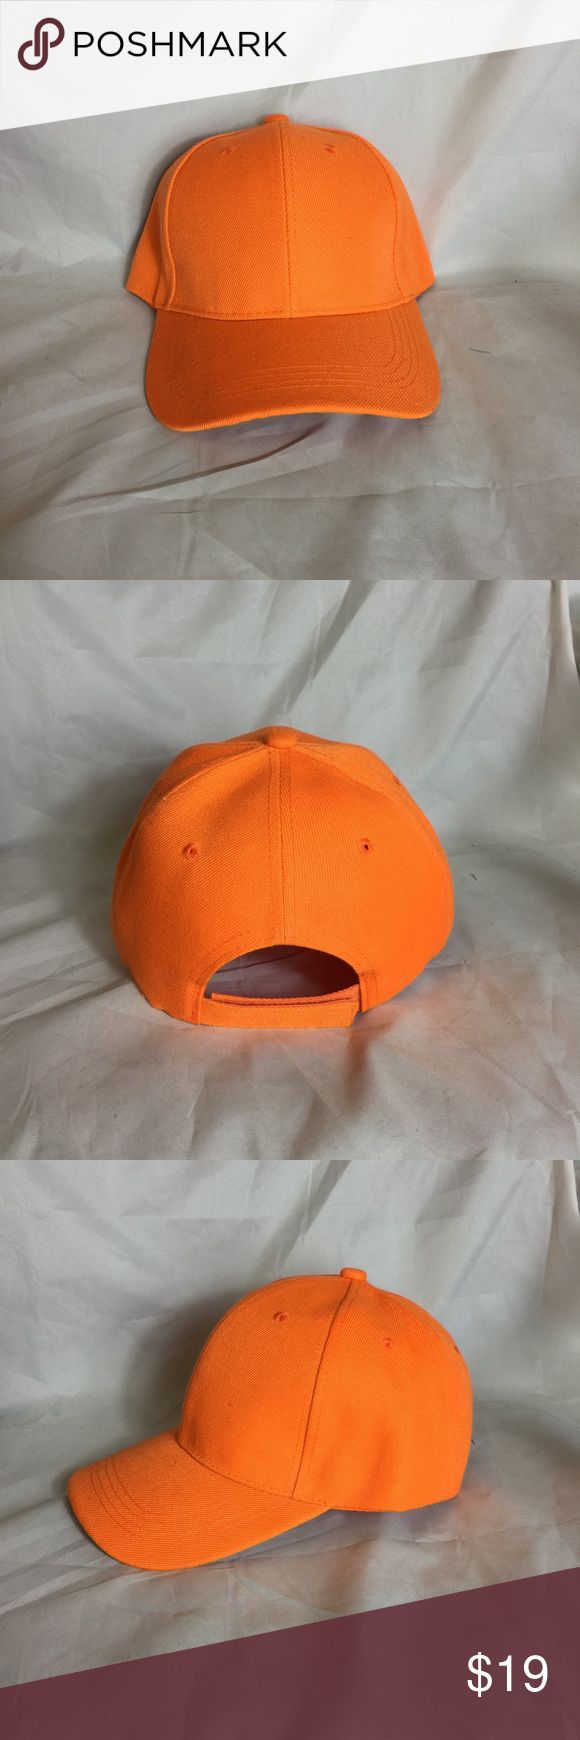 Man/Woman Hats New 🔥 Brand new simple orange hats, great deal!!!! It's summer time, you should get a hat like this lit. 🔥 DOK Accessories Hats